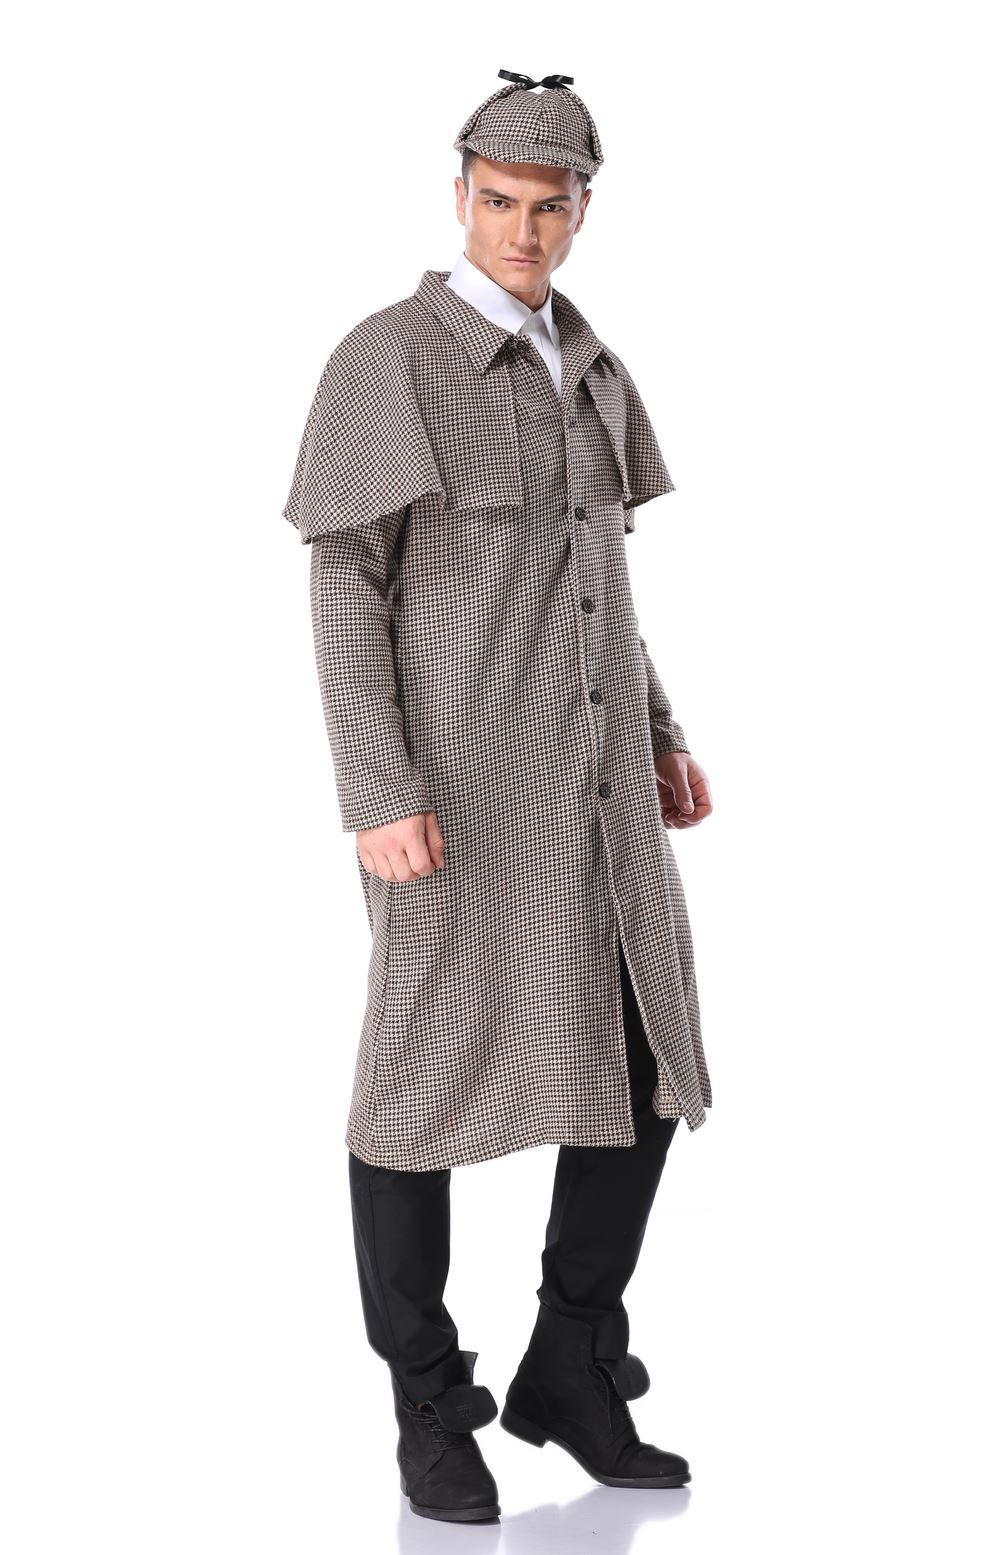 Children's role play Sherlock Holmes parent-child suit stage costume Halloween costume for men and adults